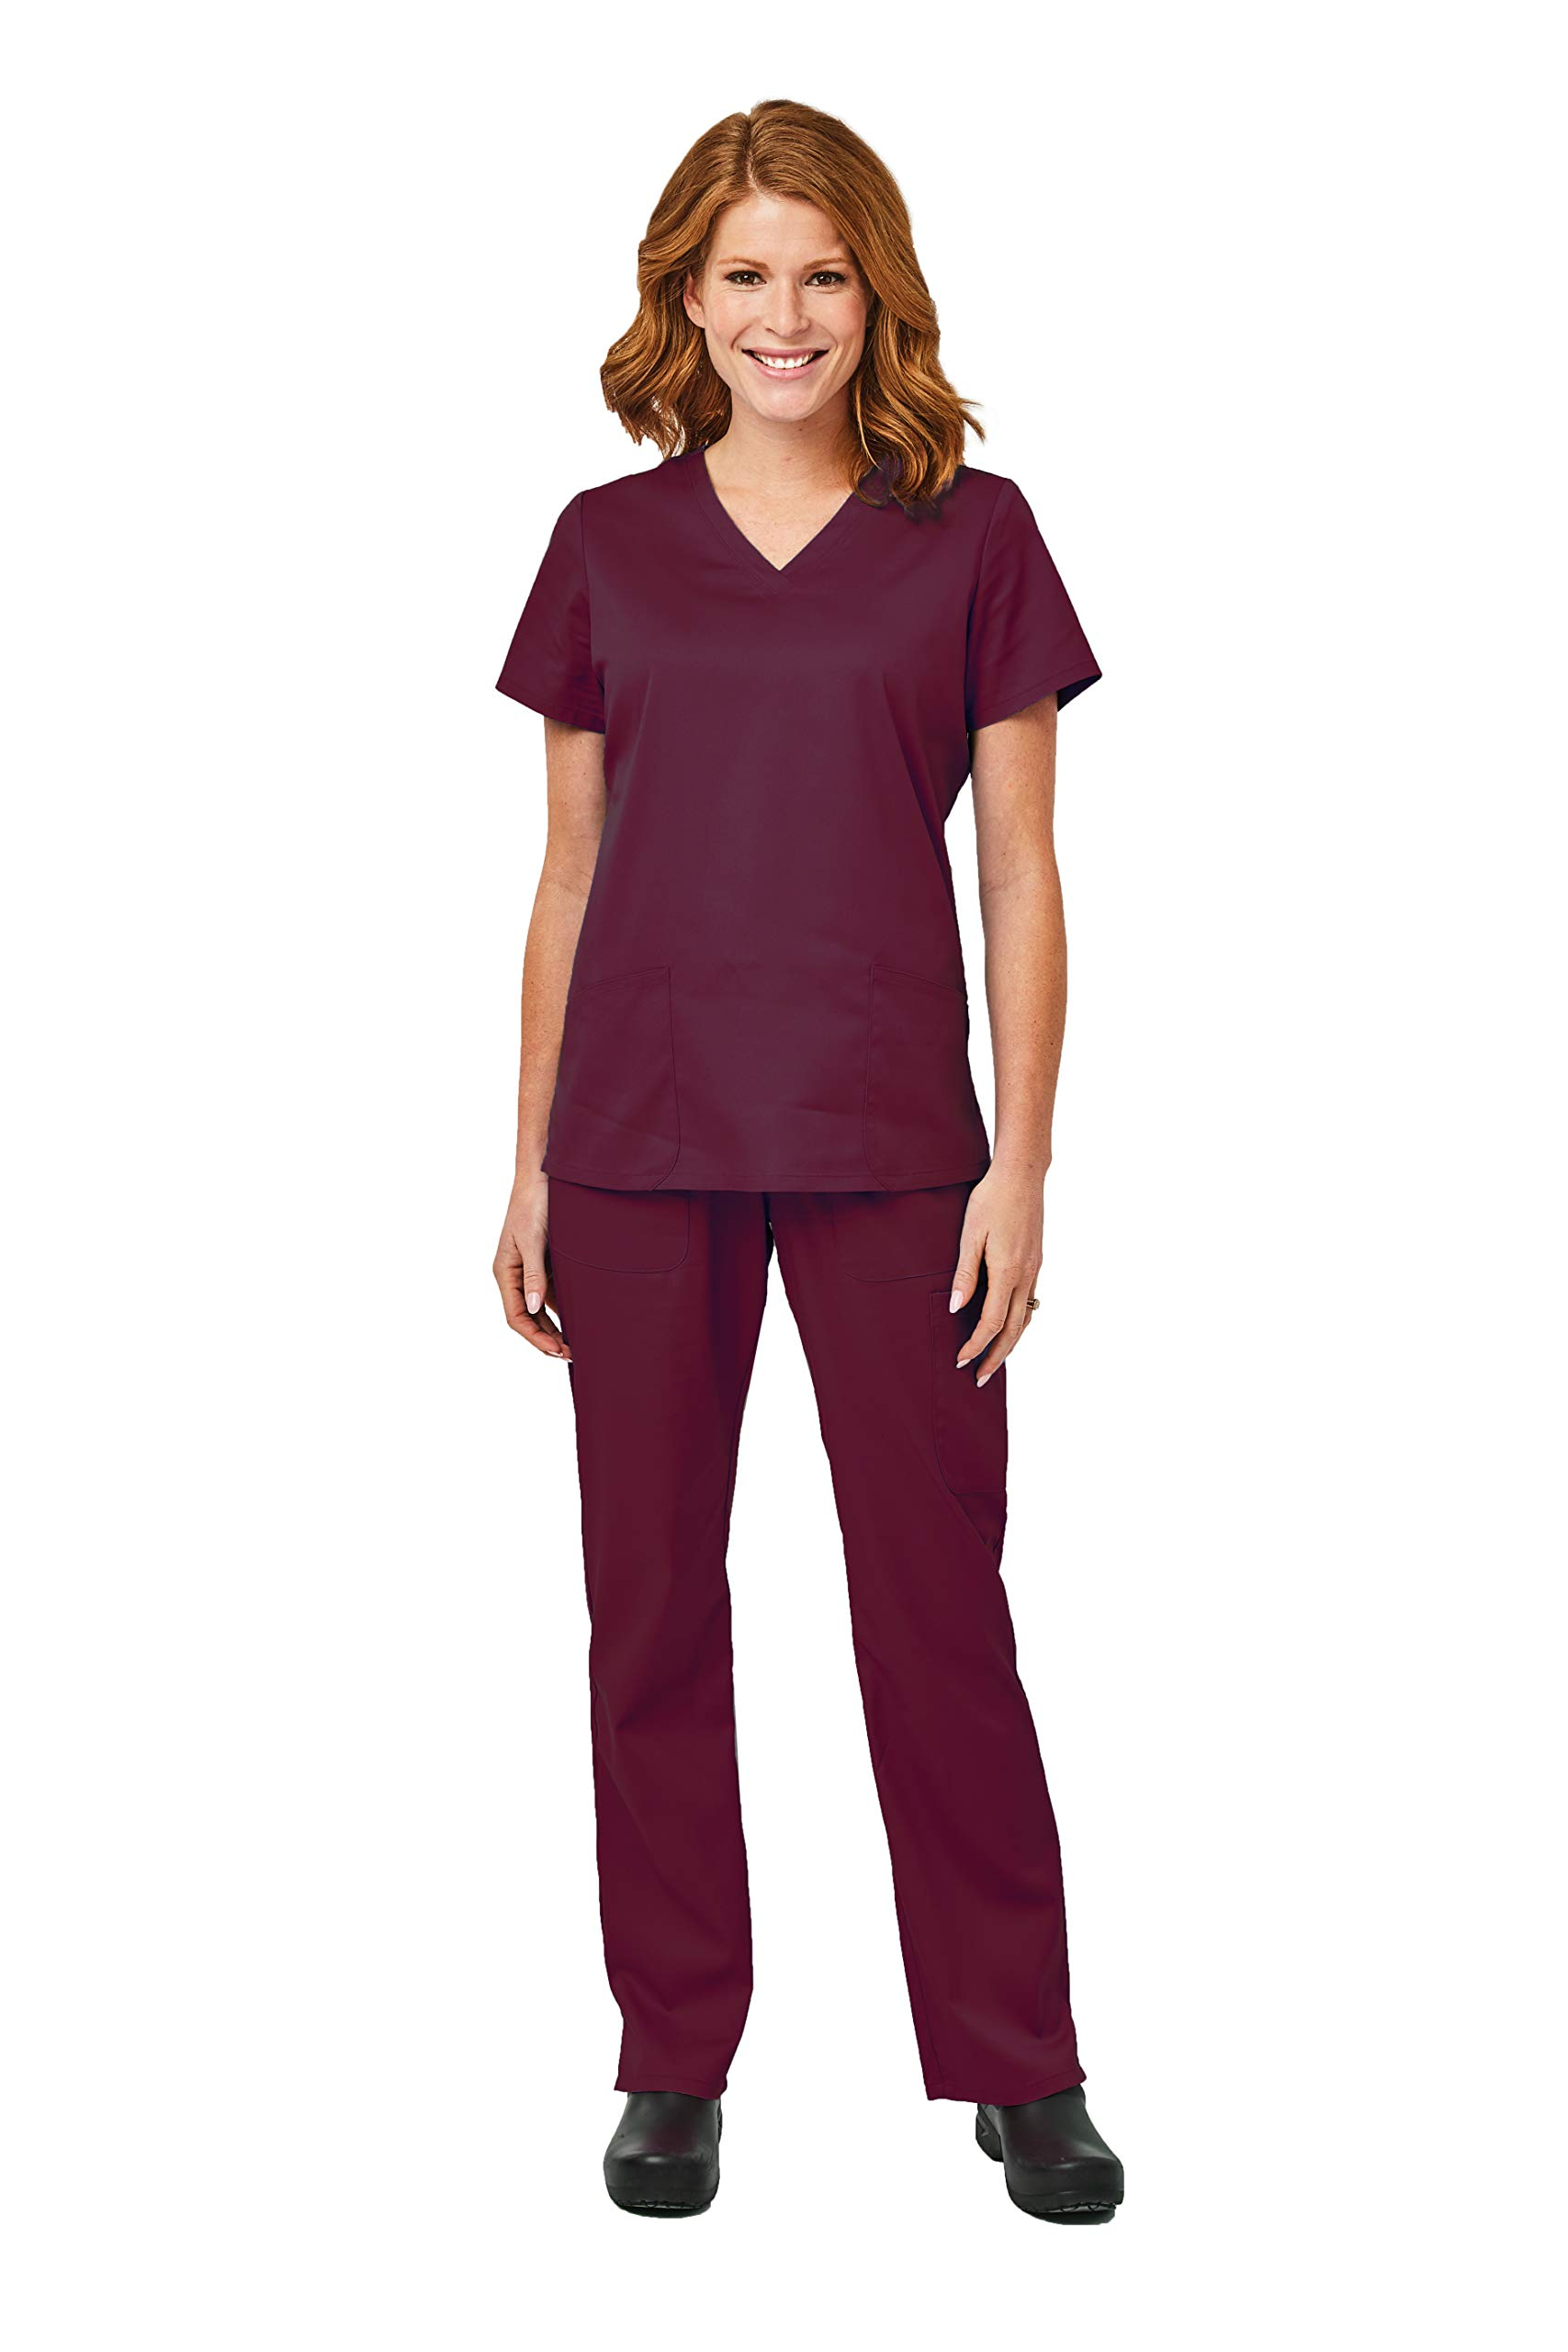 Elements by Alexander's Uniforms EL9925 Women's Four Way Stretch Scrub Set (Wine, 2X-Large)